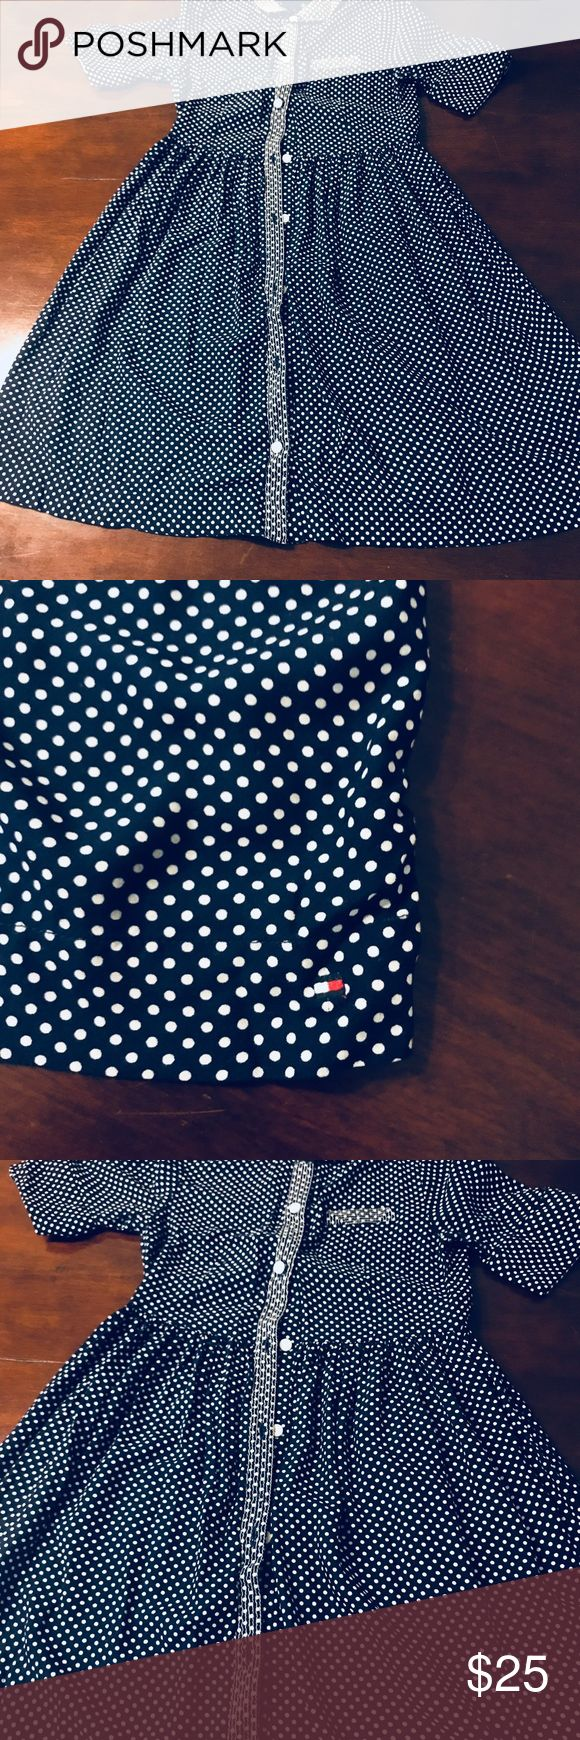 Girls Tommy Hilfiger Dress Navy blue / polka dot camisero style from Tommys Boutique Tommy Hilfiger Dresses Casual